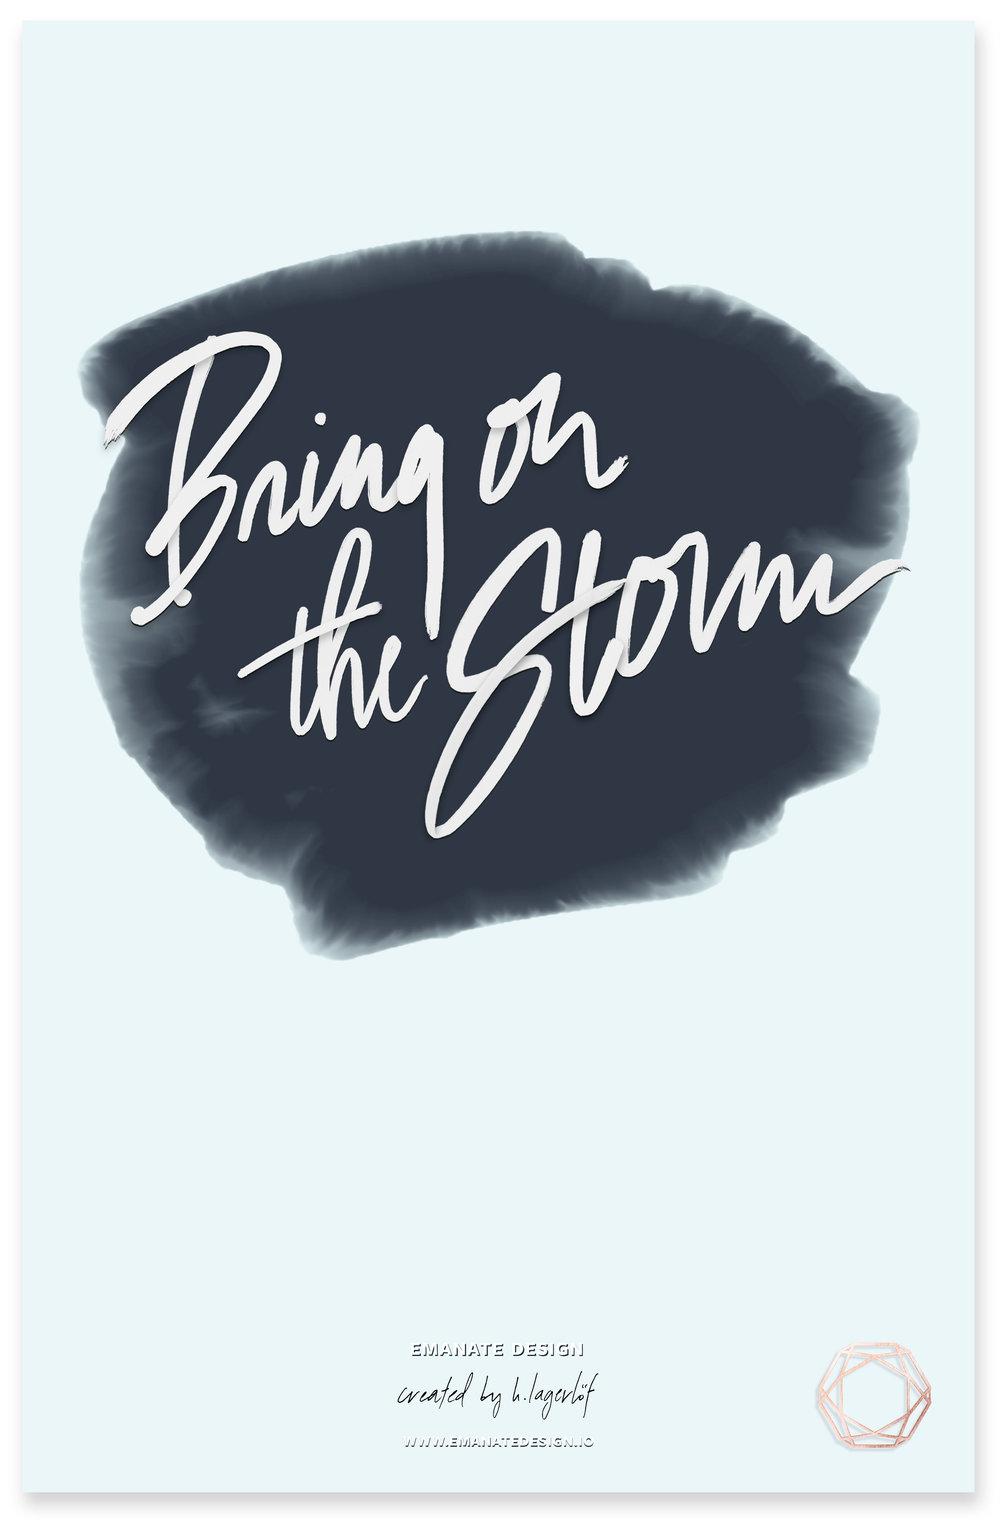 Bring on the Storm / Emanate Design